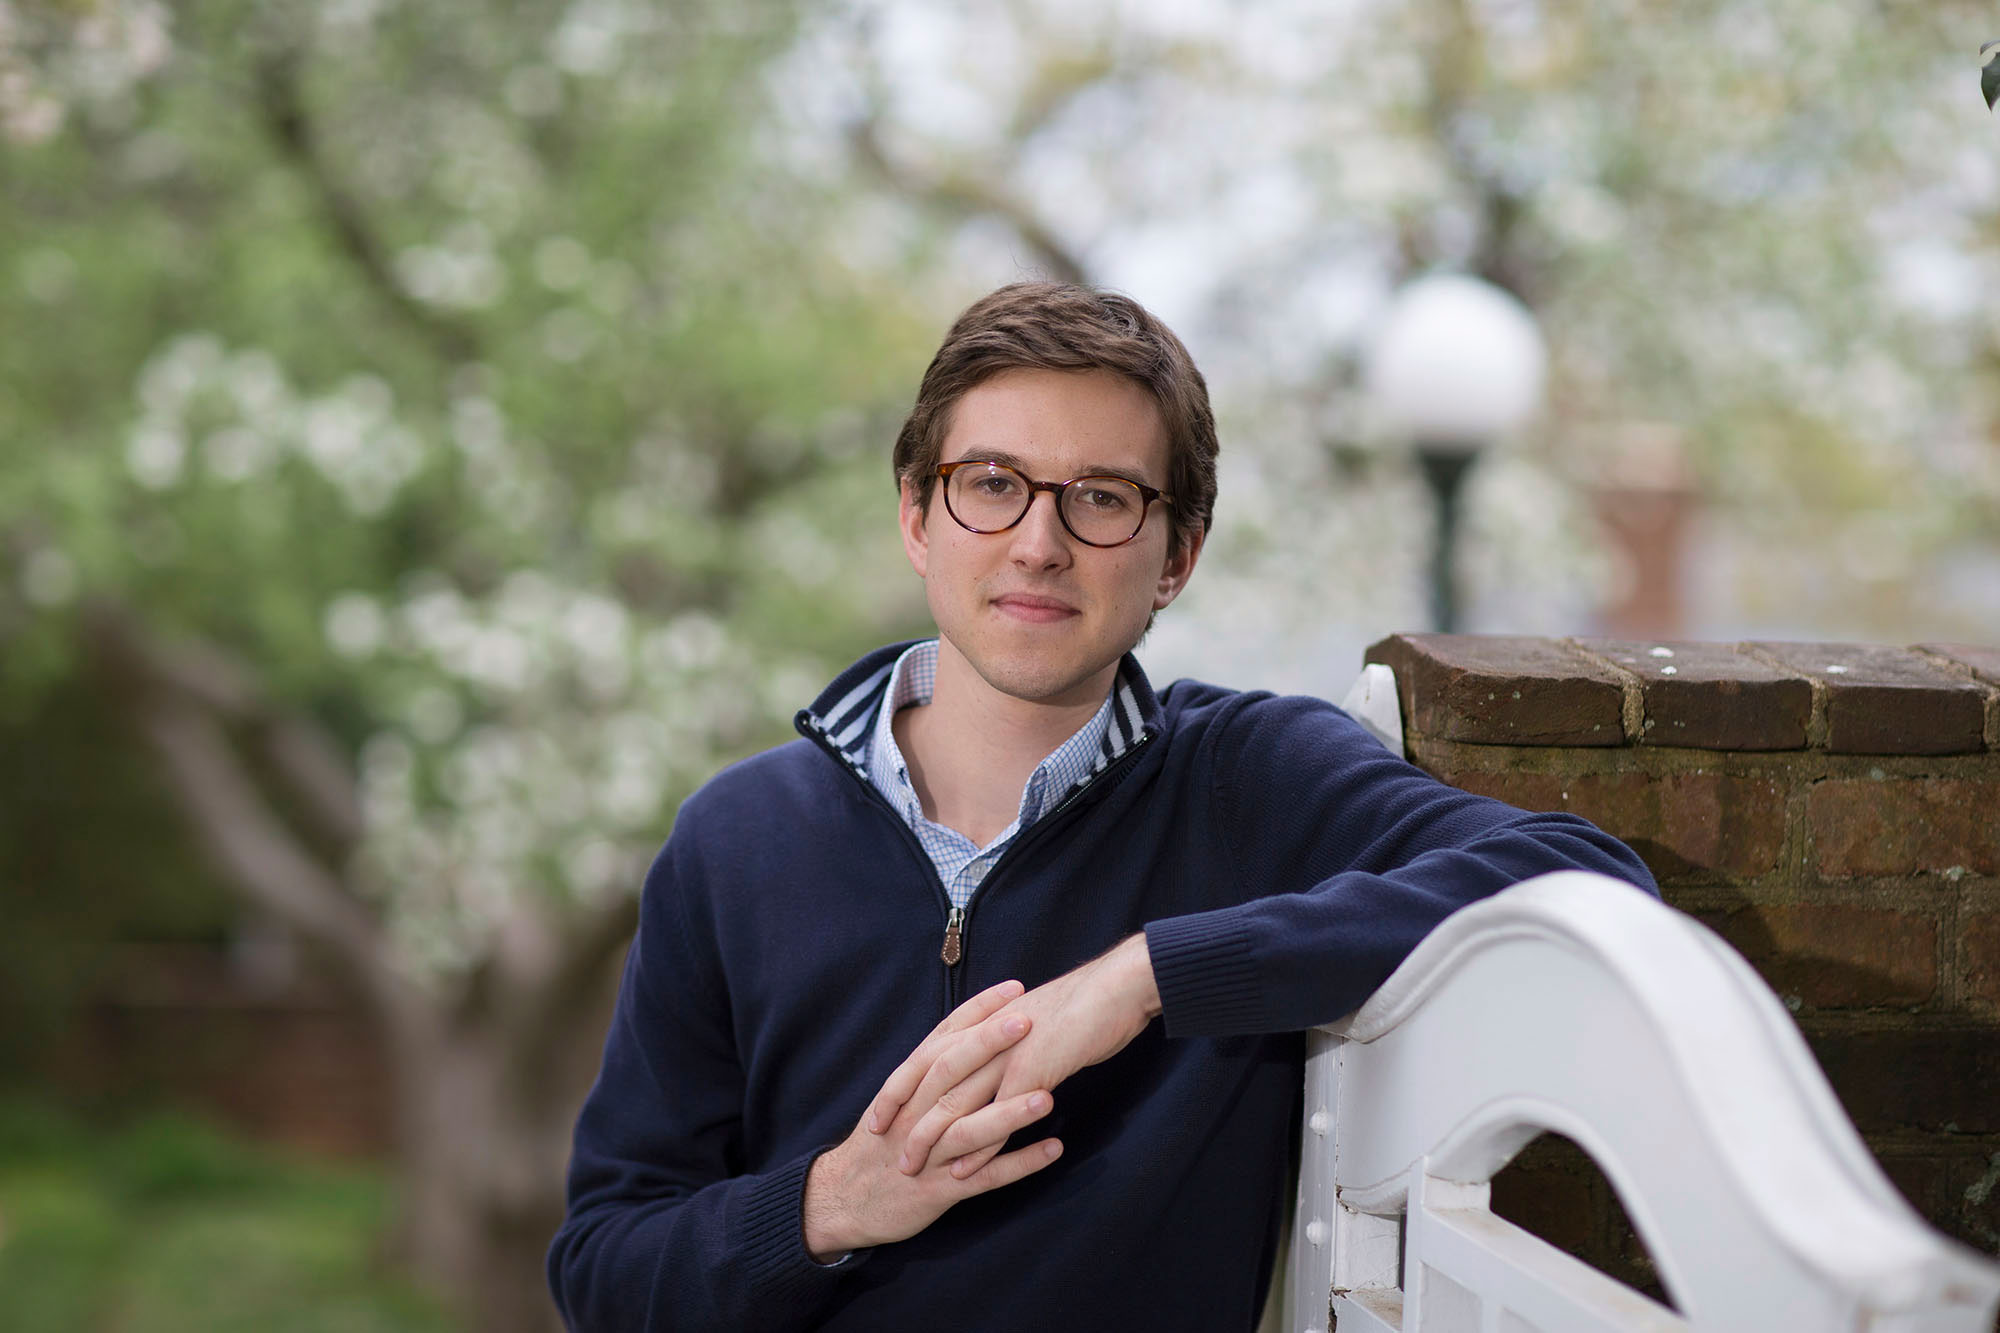 Russell Bogue, a Rhodes Scholar, has been researching two areas: the intersection of politics and economics, and the political opinions of Taiwanese youth.